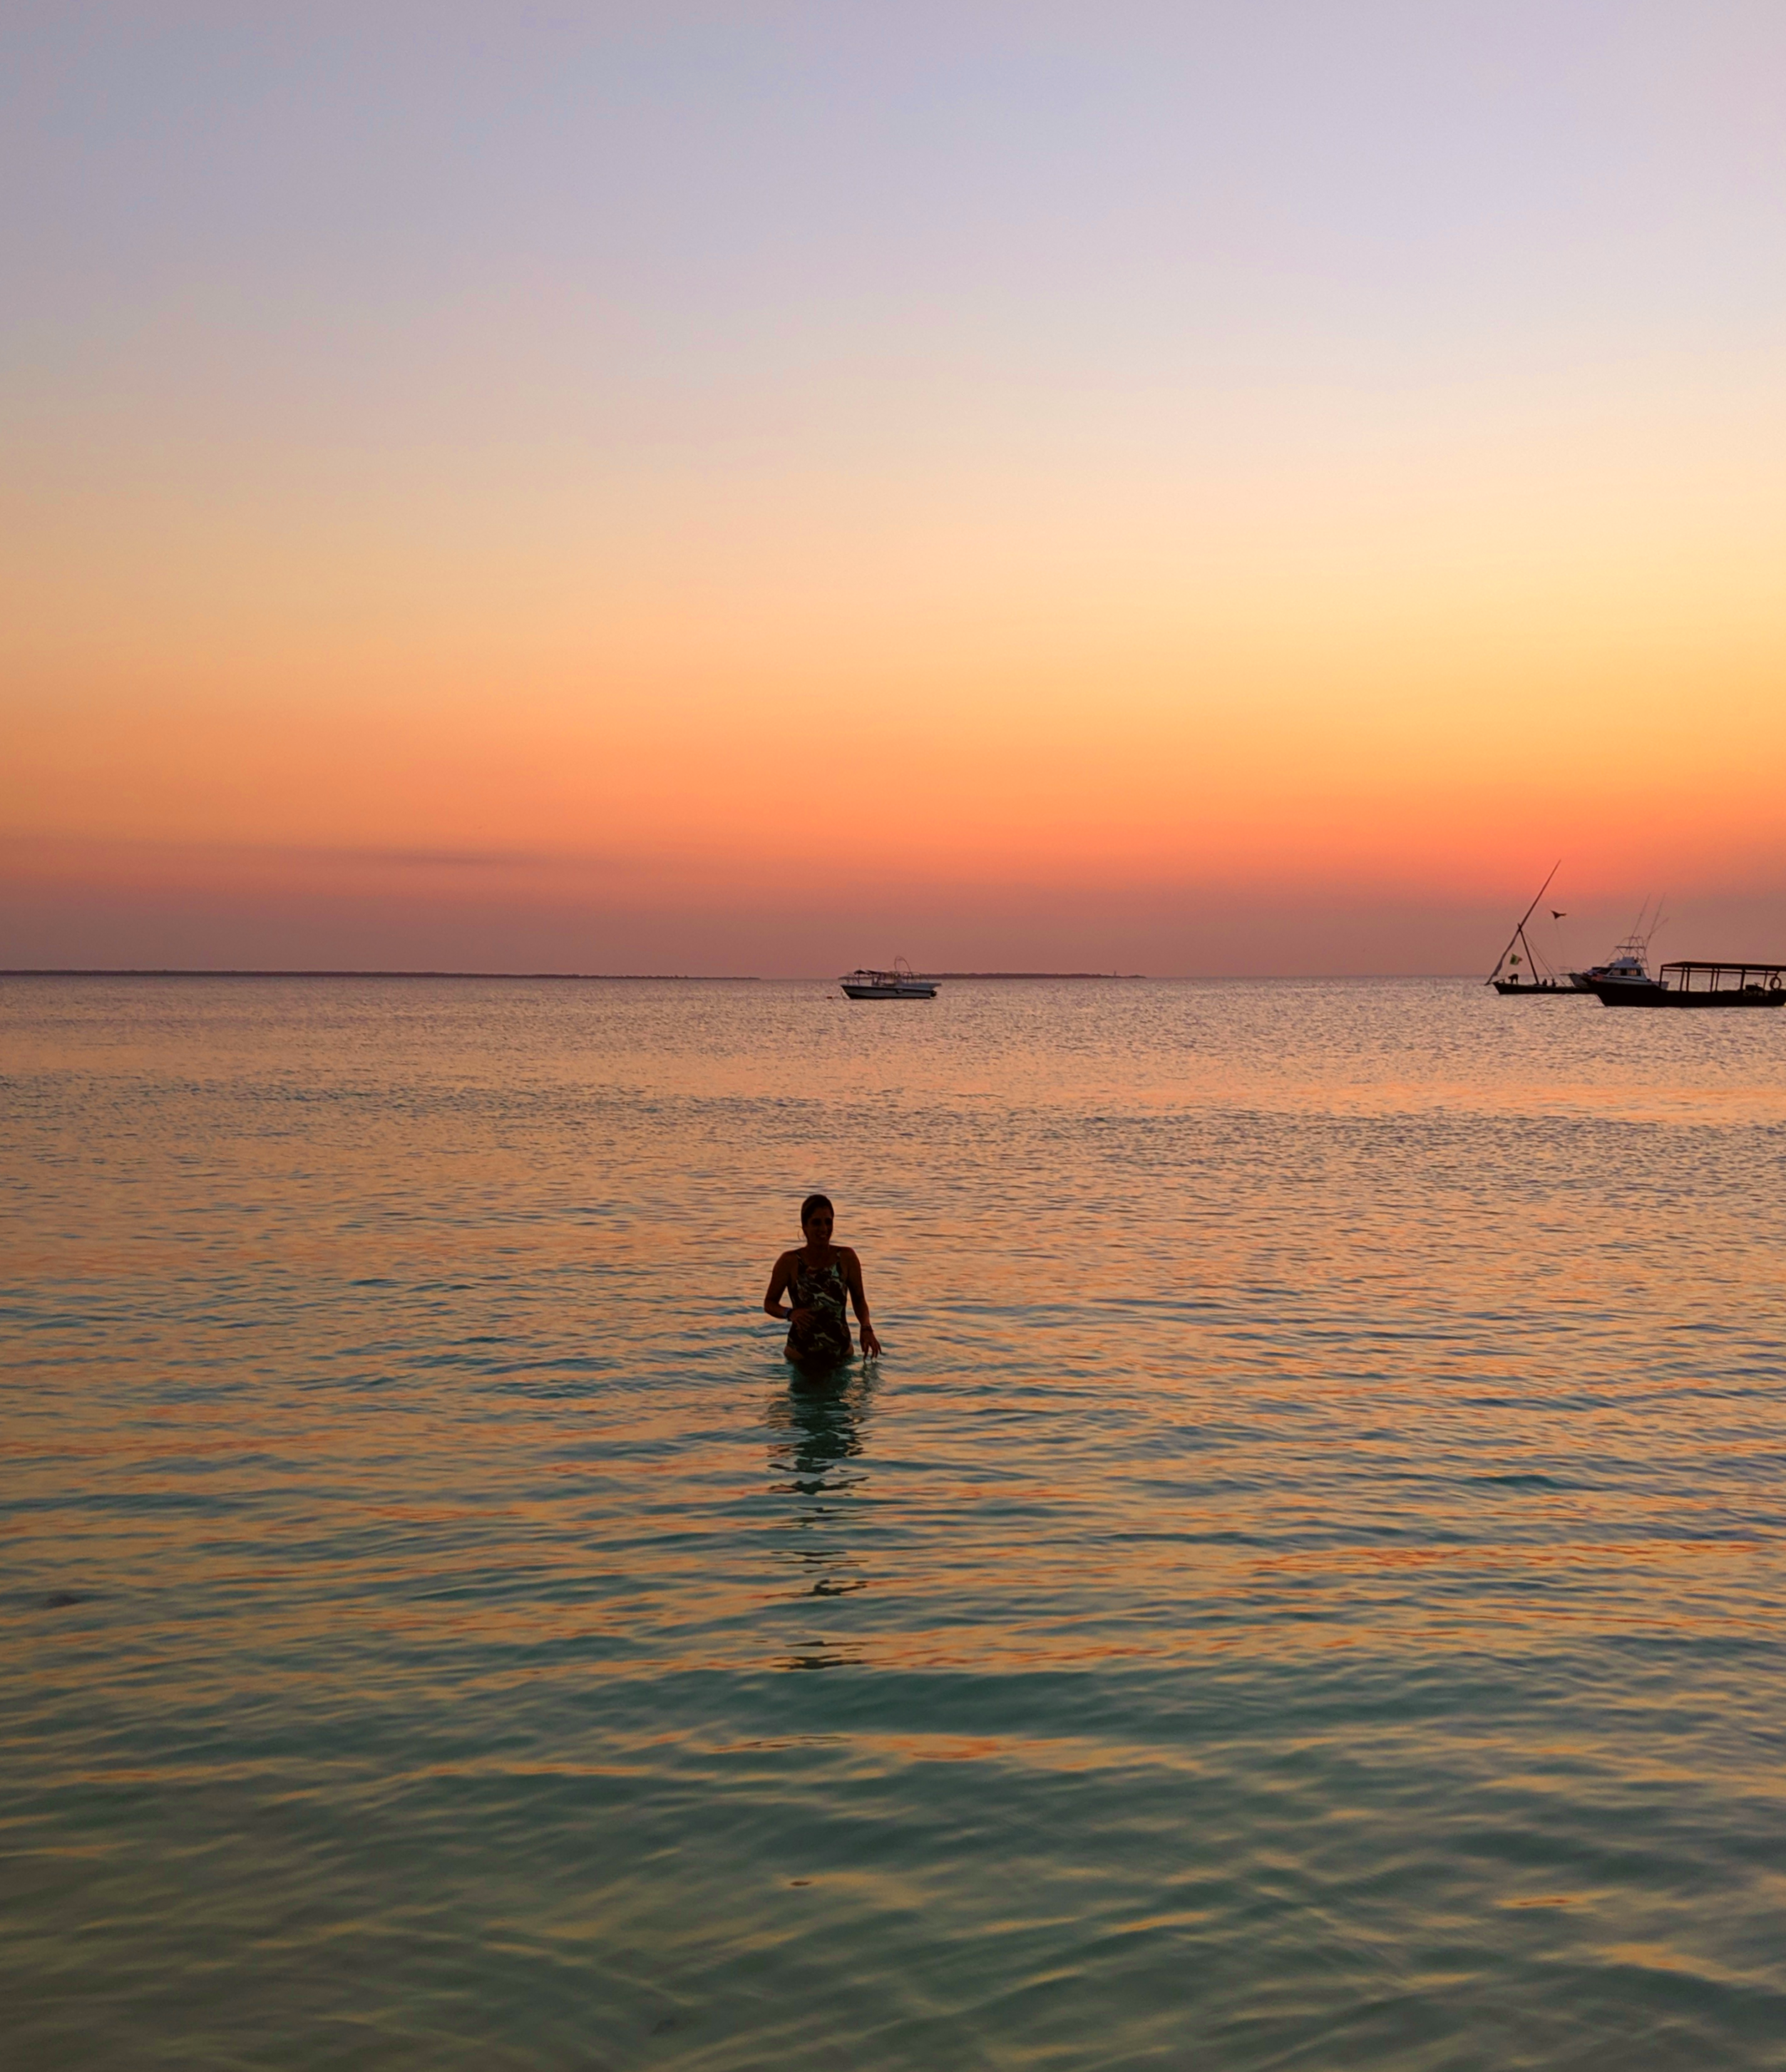 A person sea swimming at sunset